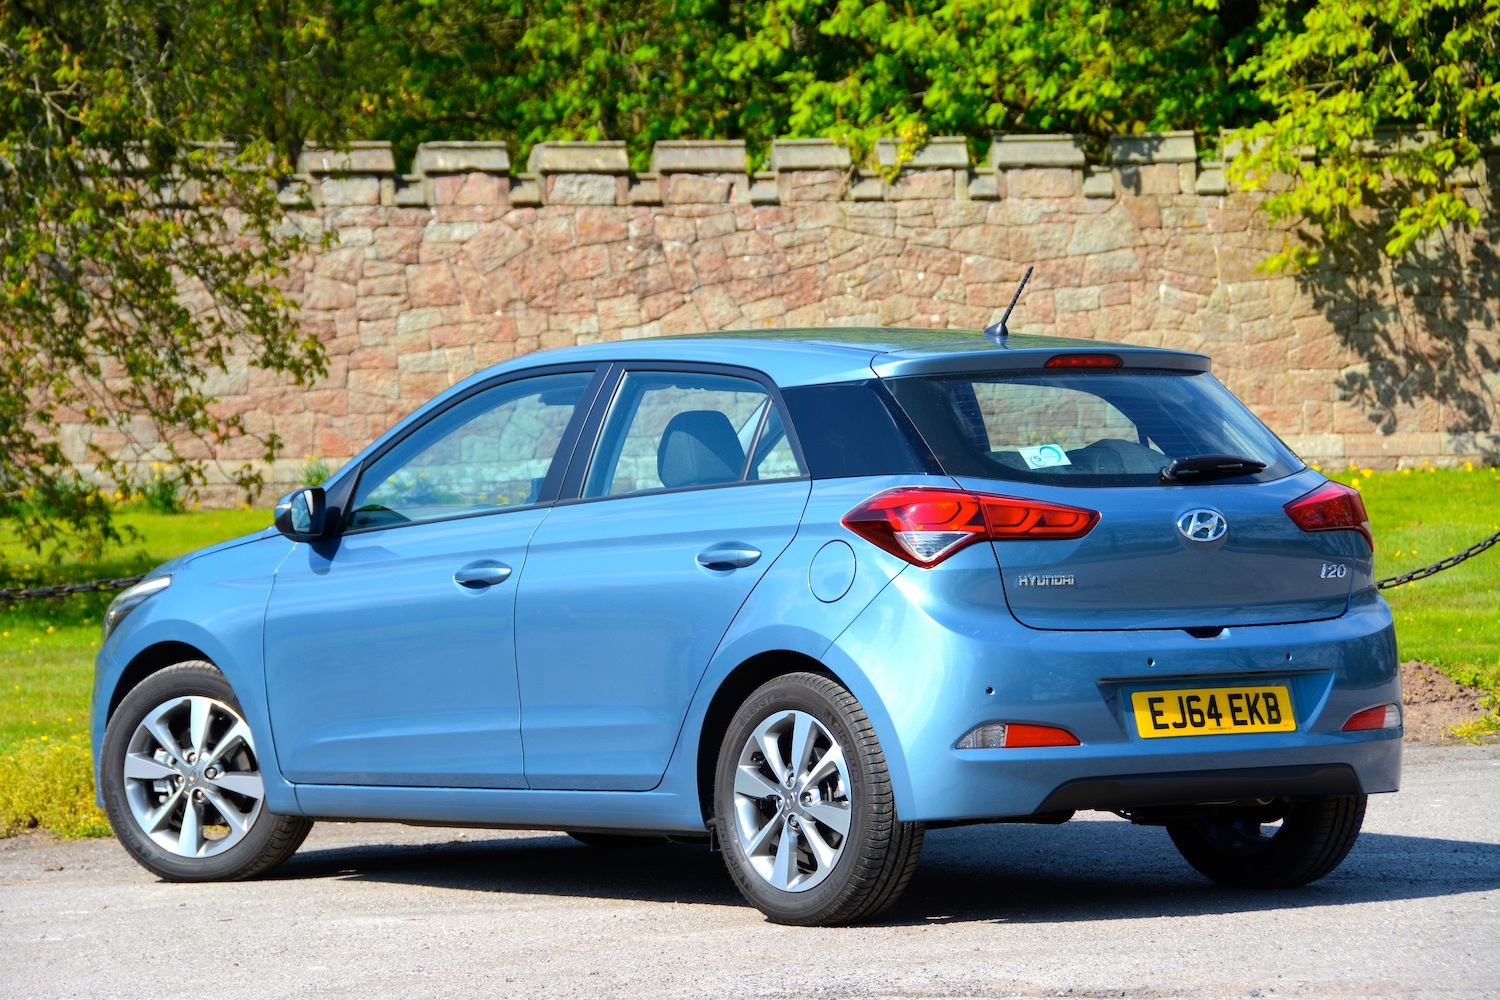 Hyundai i20 SE 1 1 CRDi Manual Review - GreenCarGuide co uk